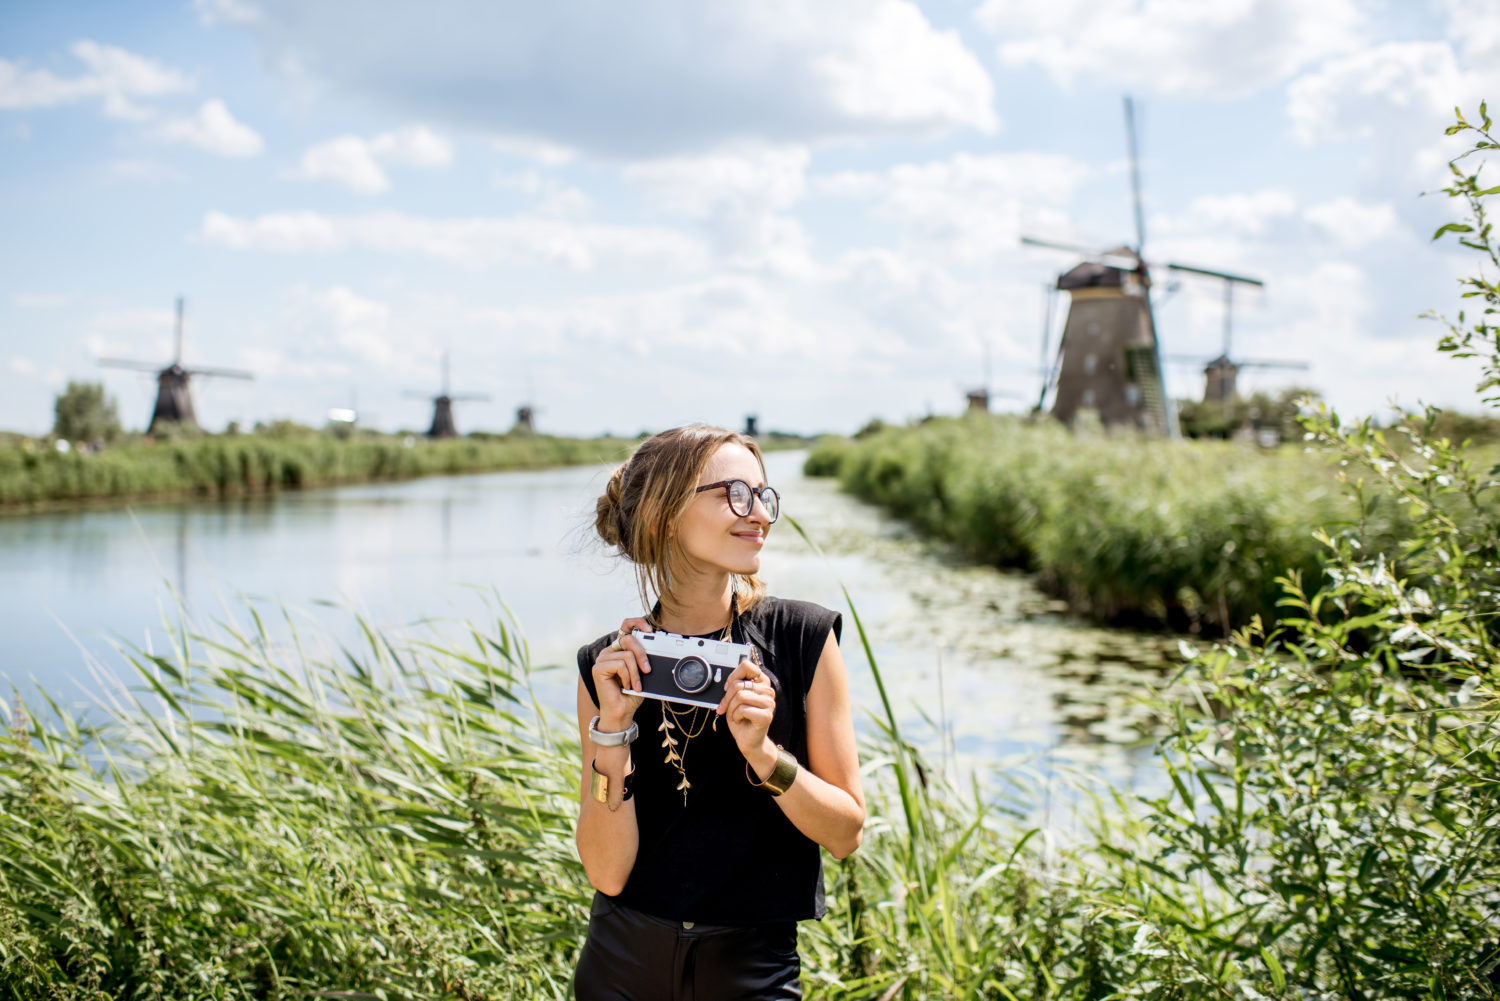 Smiling woman with a camera standing next to a canal in Netherlands with windmills in the background